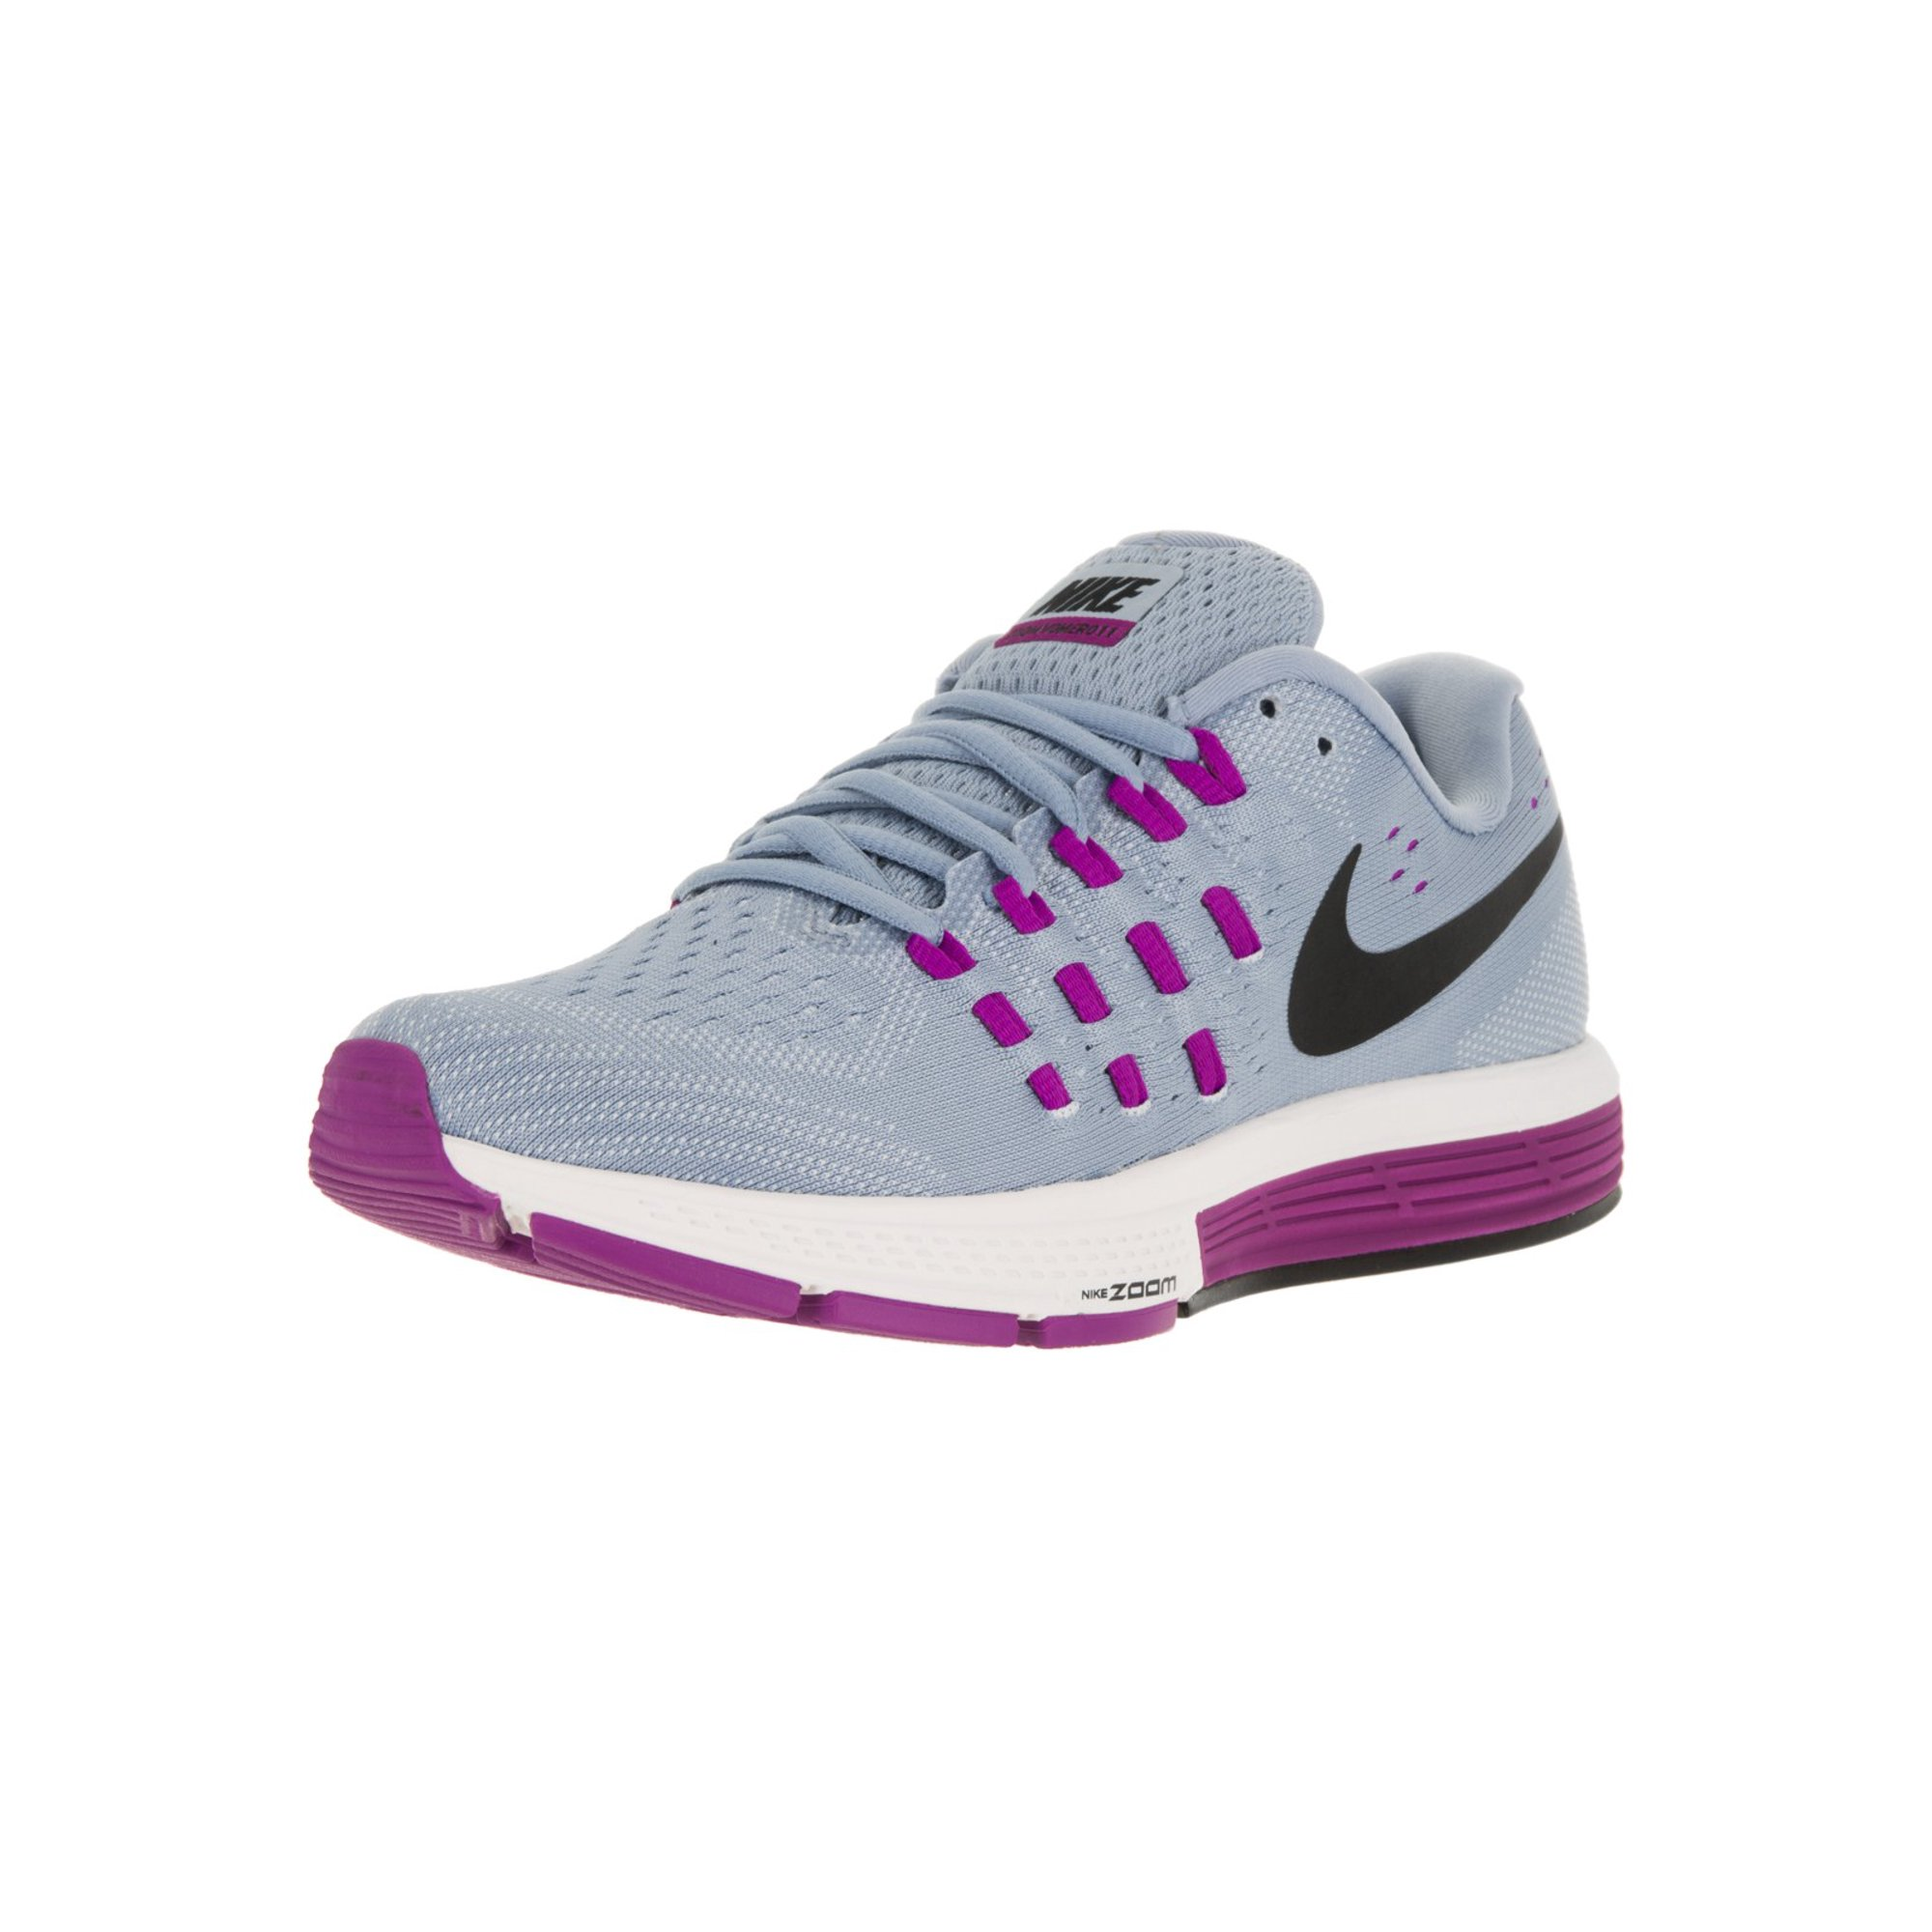 a008853a5afb1 Nike Women s Air Zoom Vomero 11 Running Shoe